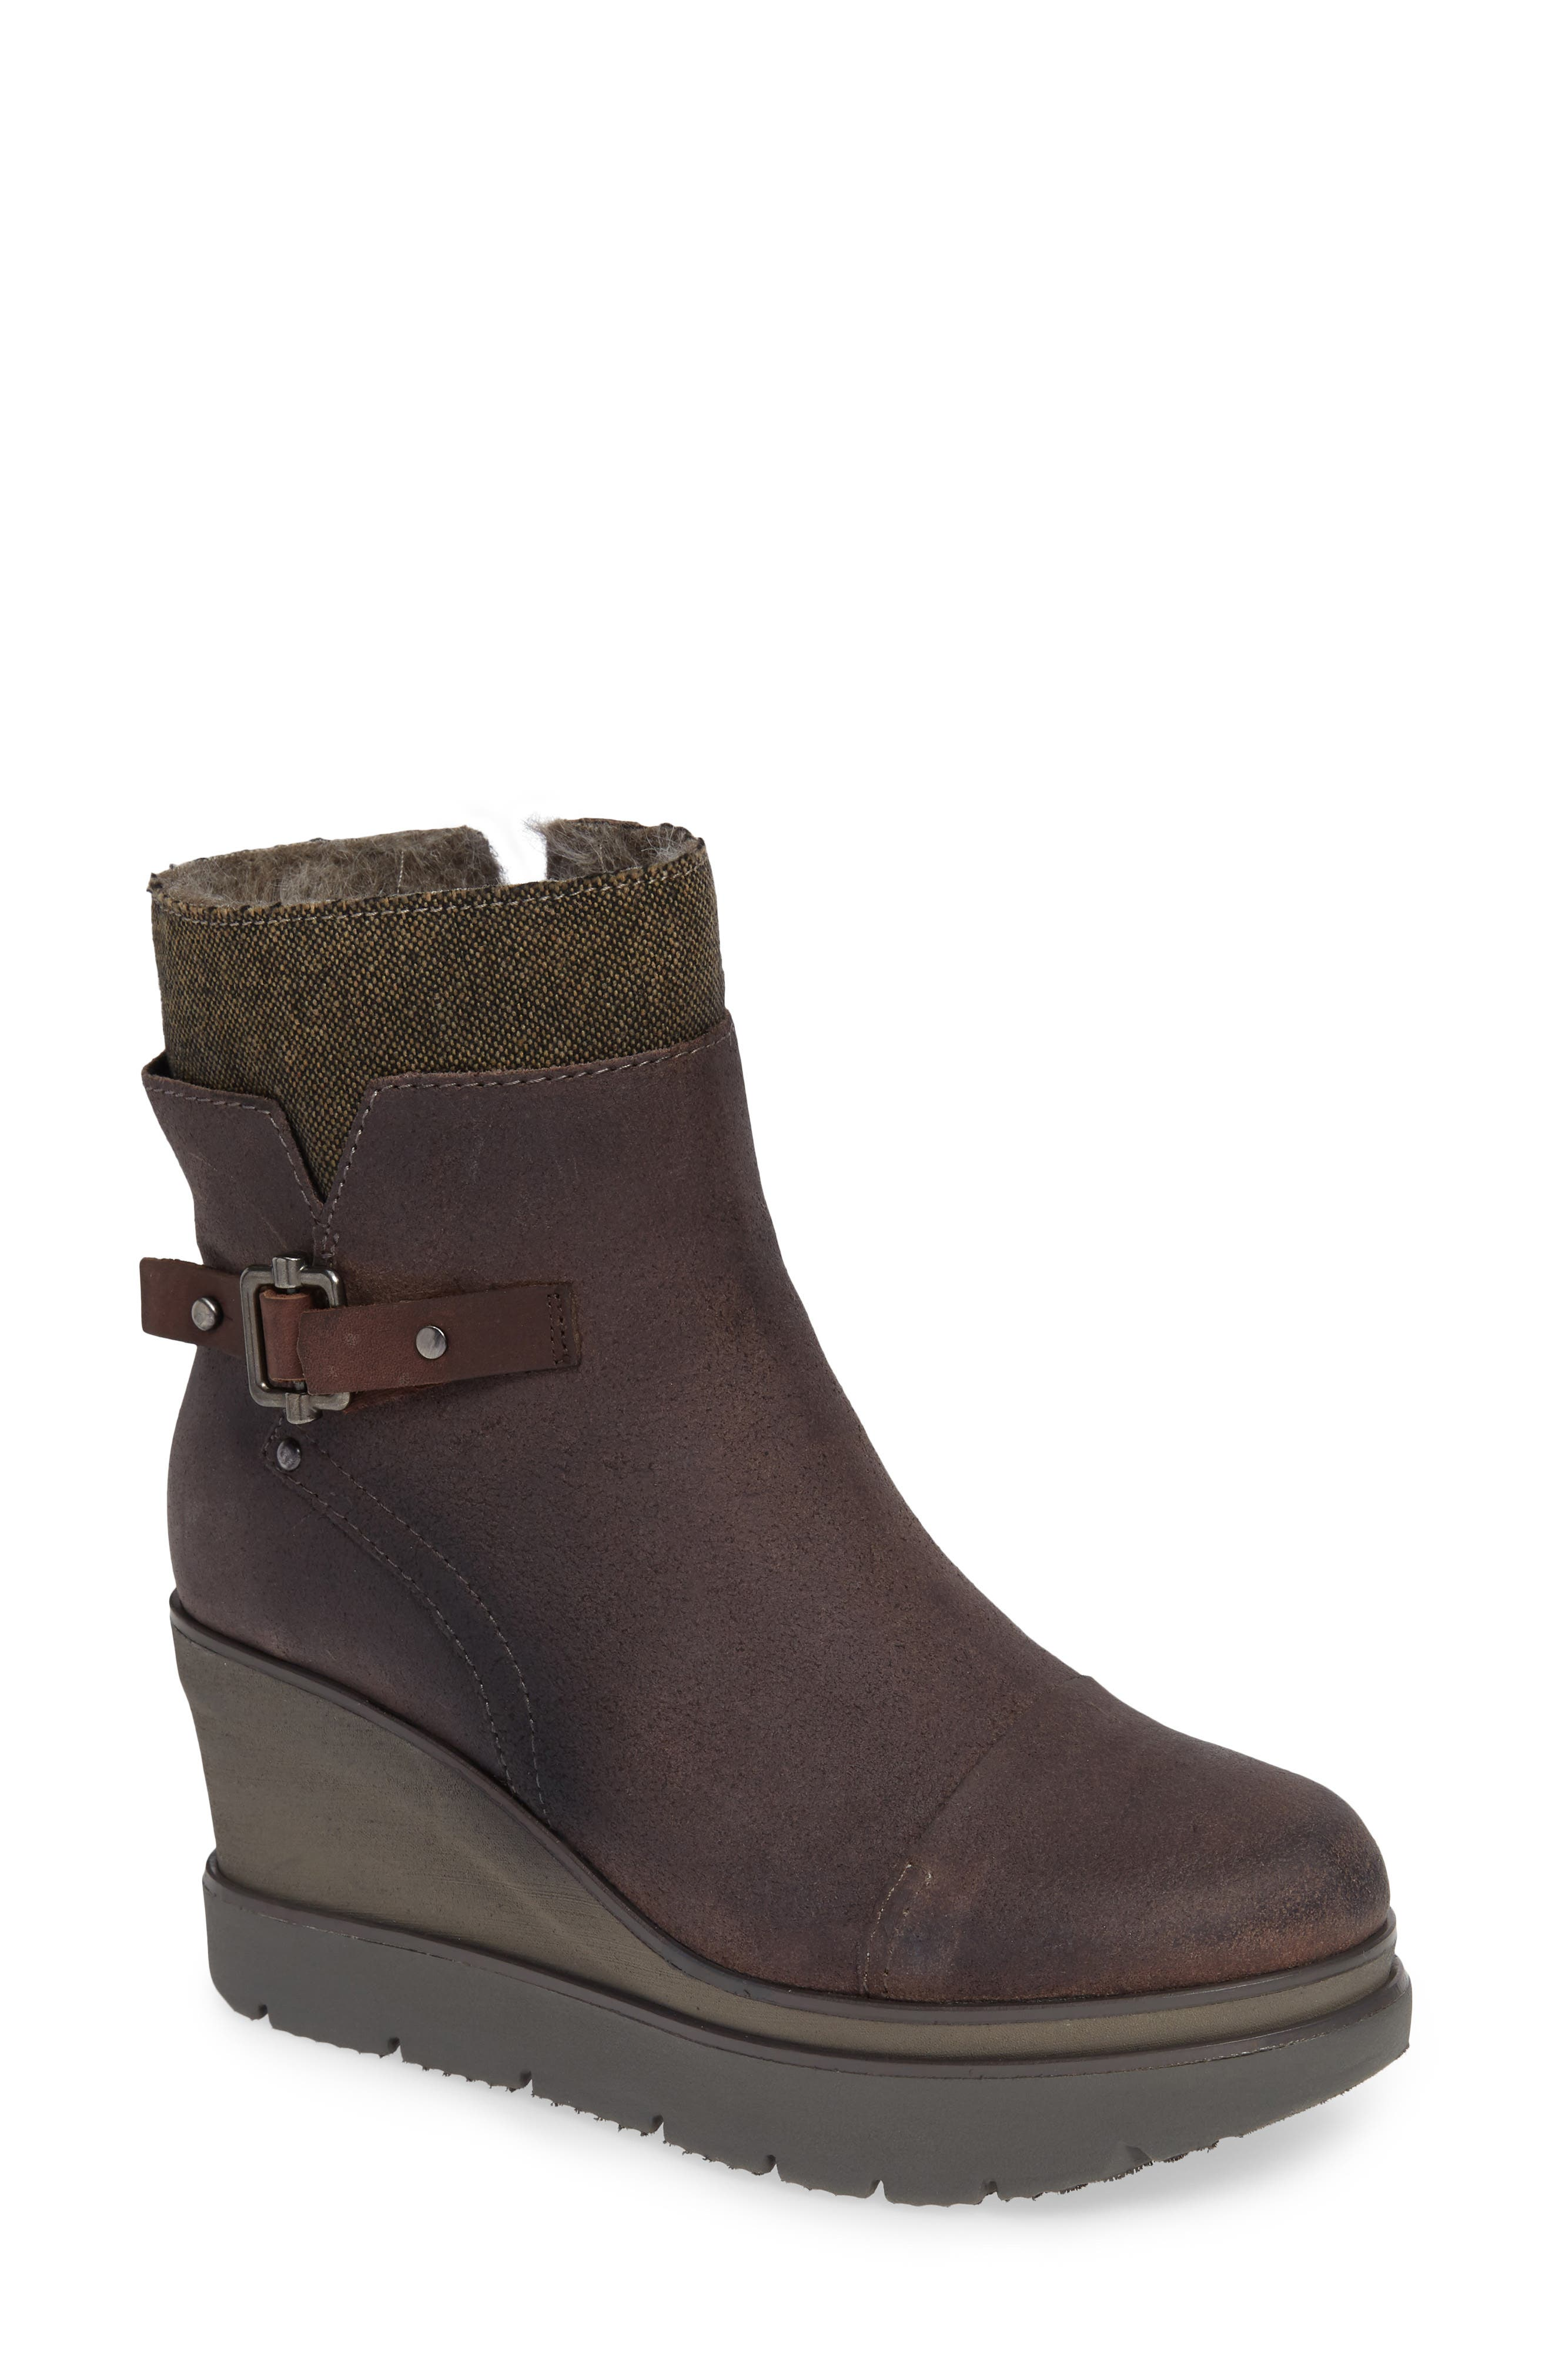 Otbt Descend Bootie- Grey